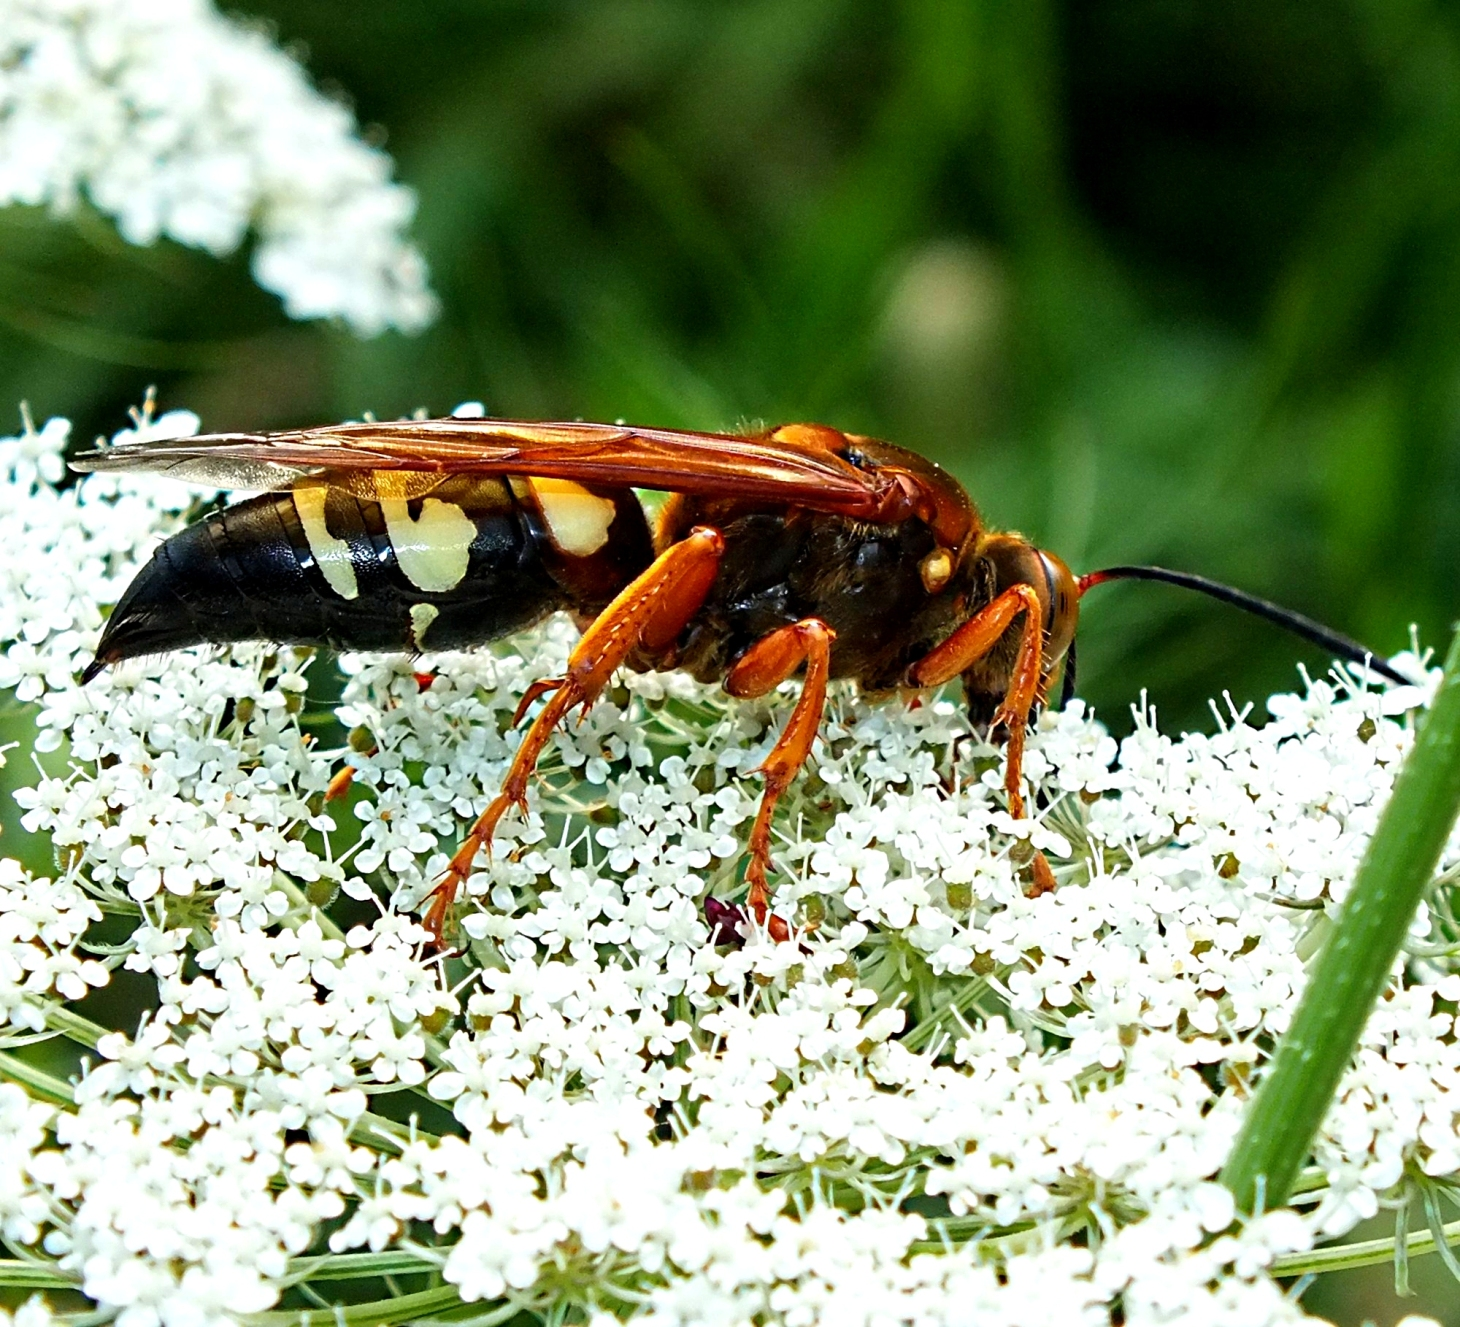 Huge Wasp indeed! (1) Photo by Thomas Peace 2014